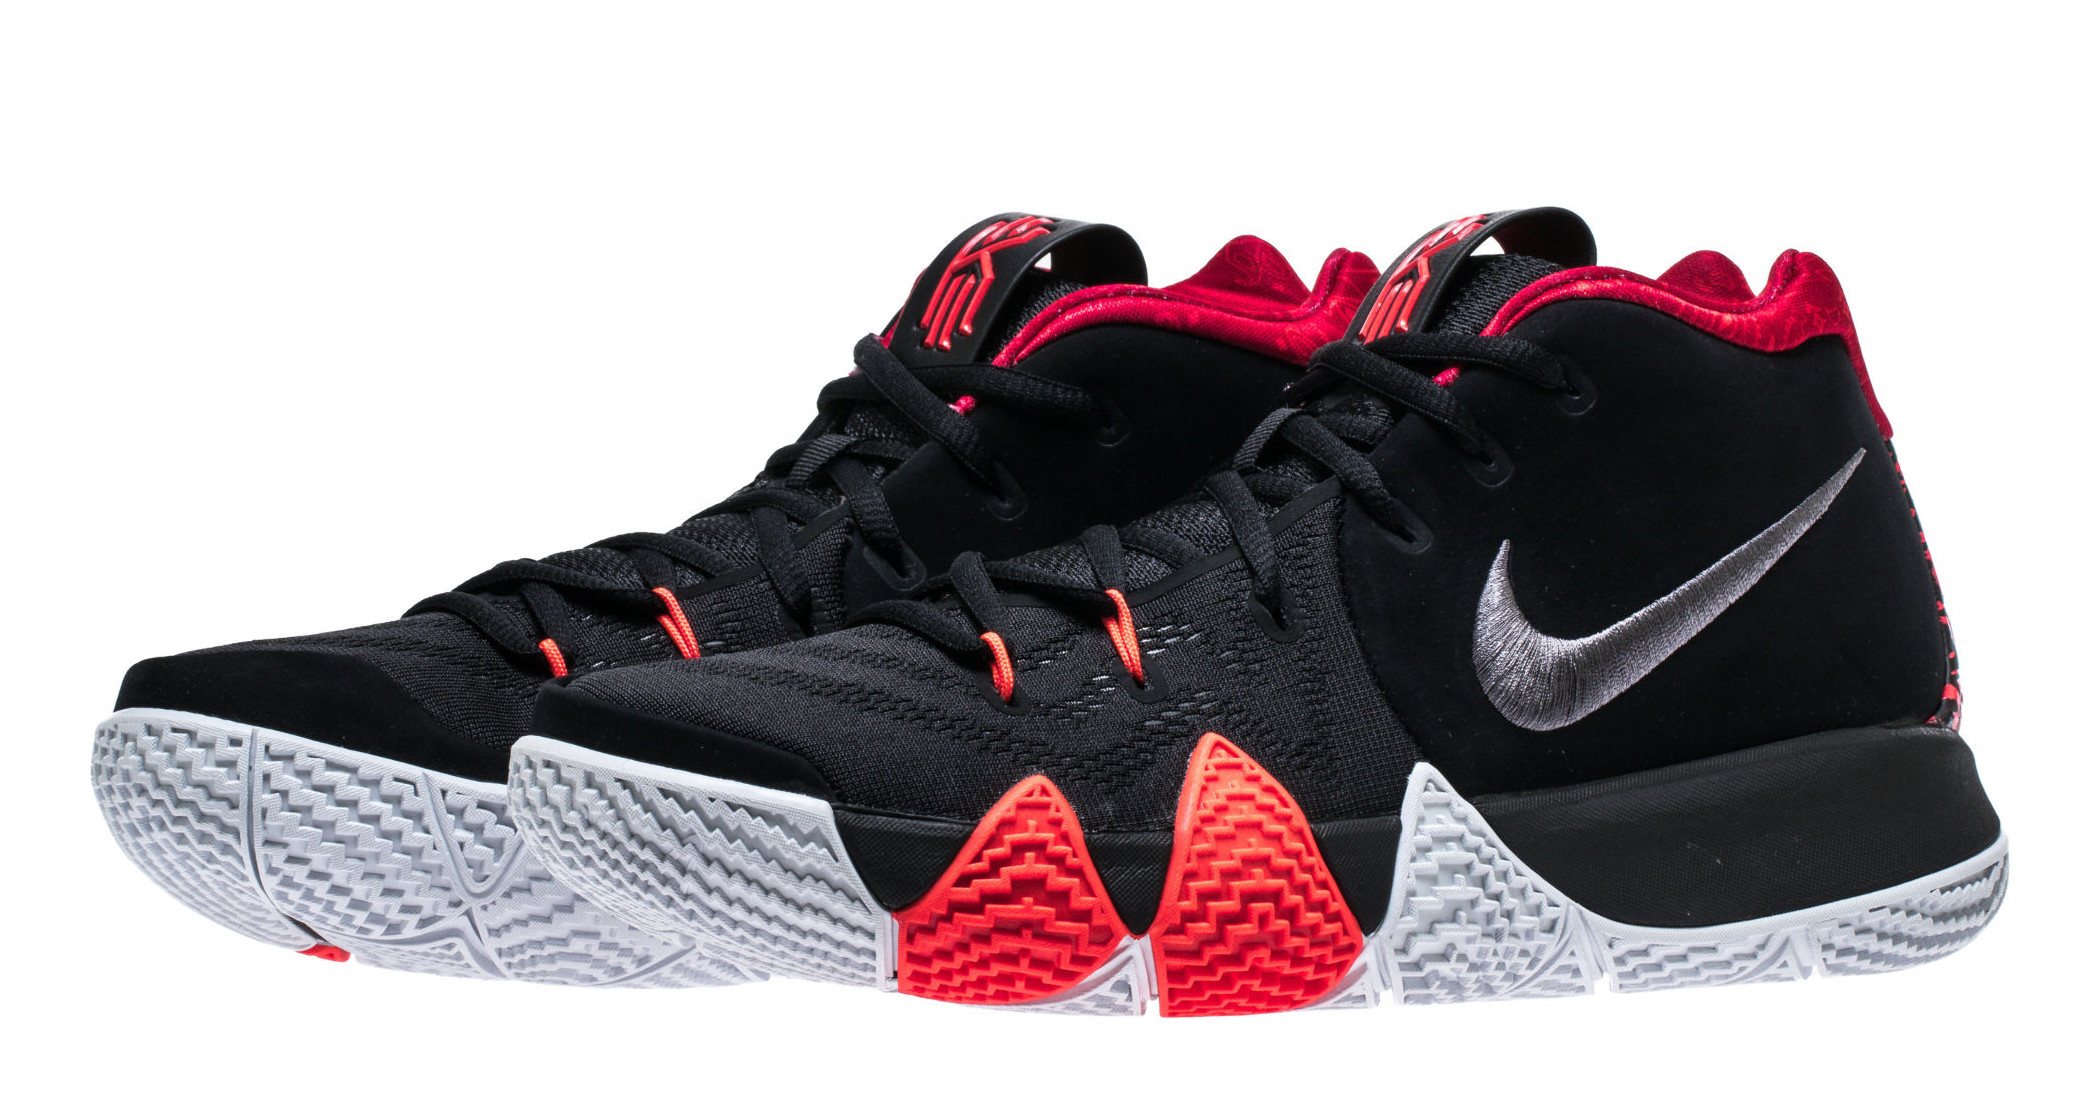 4cf810b1a736ec ... australia black and red kyrie 4s coming next month 7bc31 55e1a